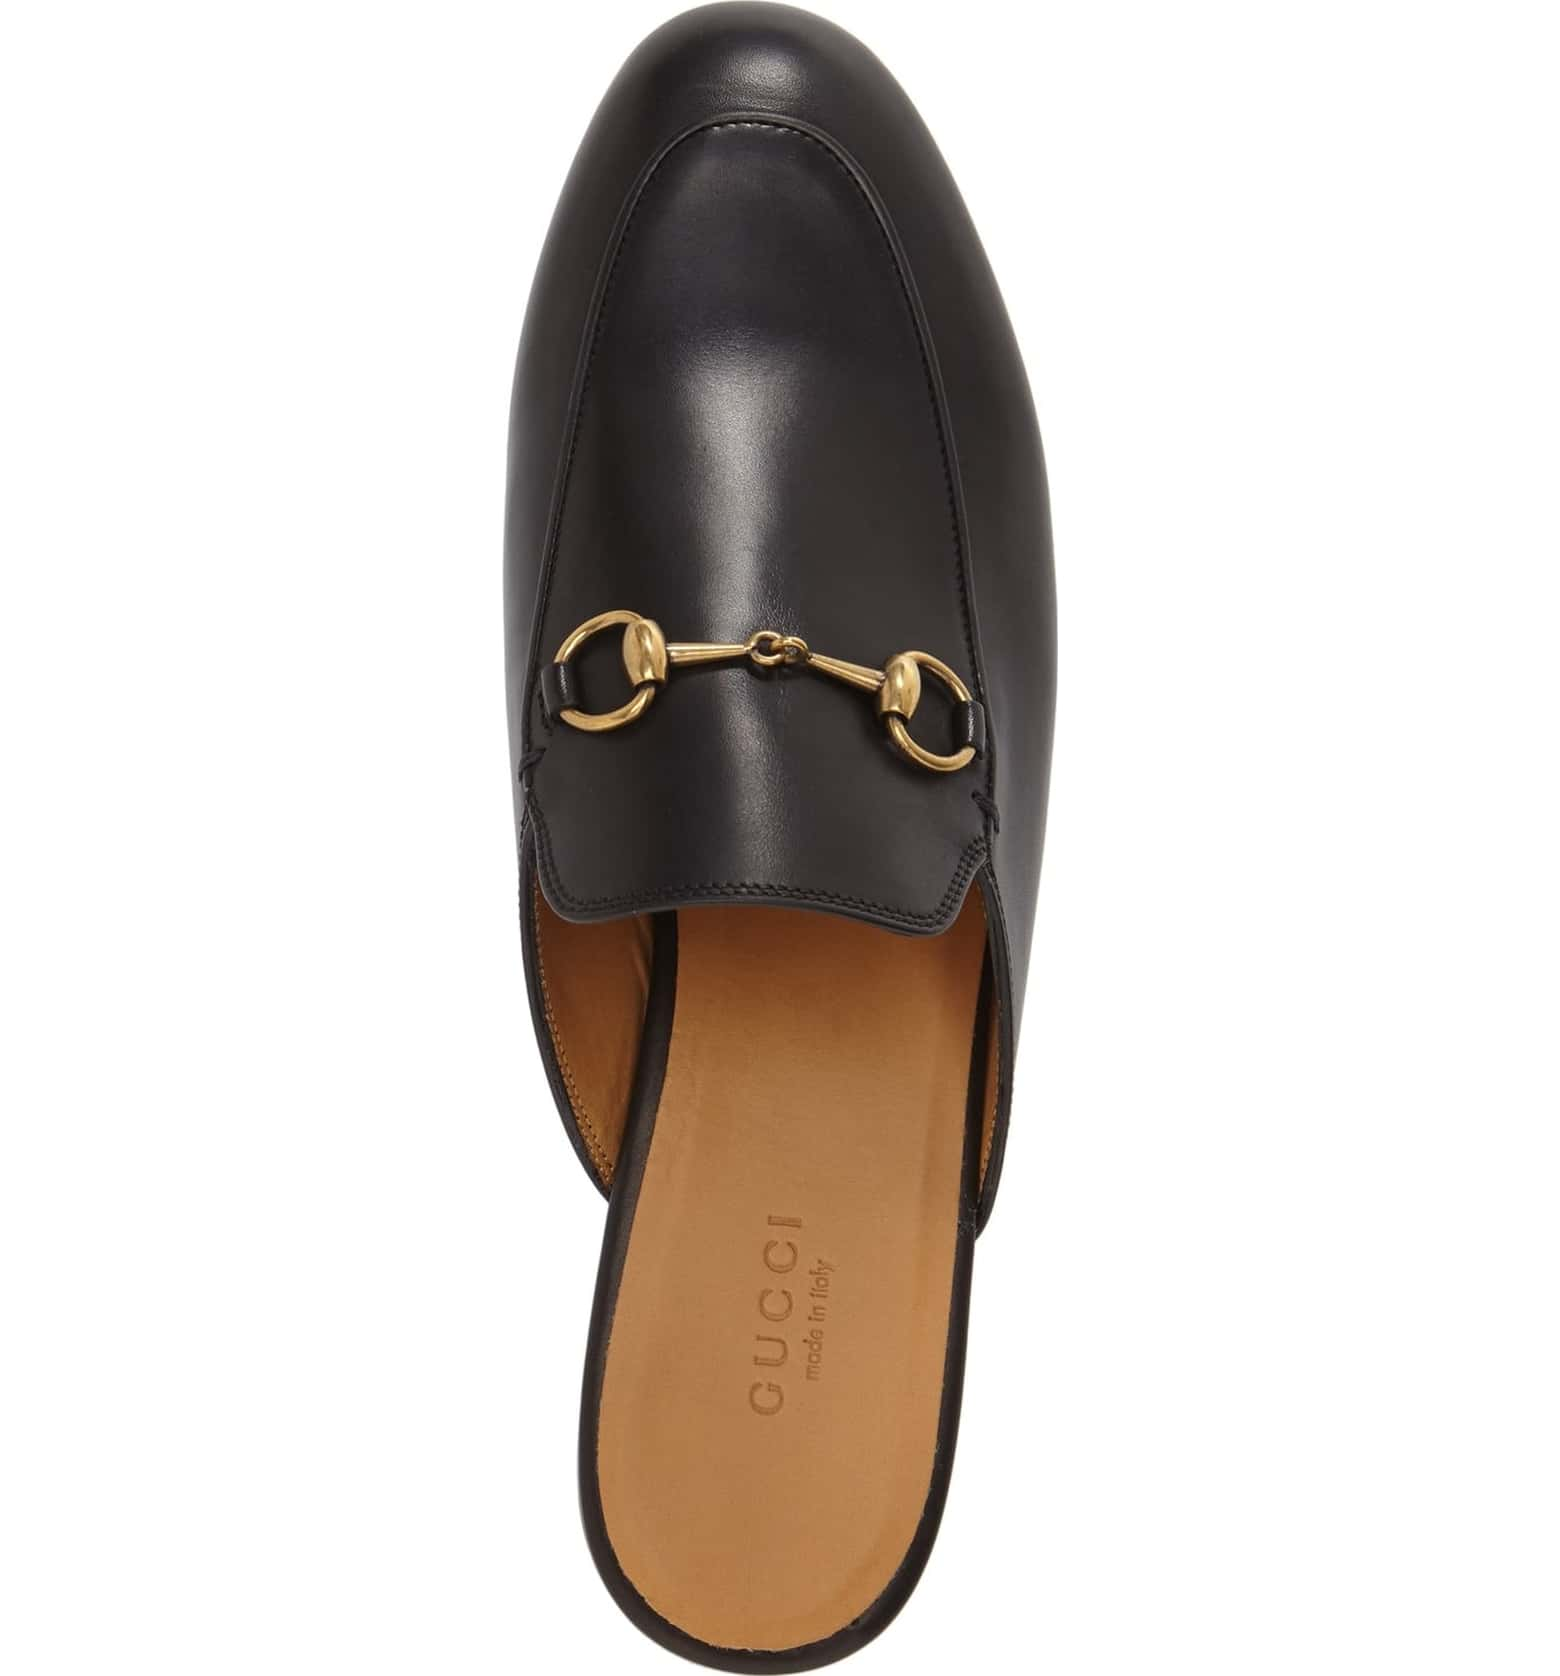 gucci horsebit slipper - $695